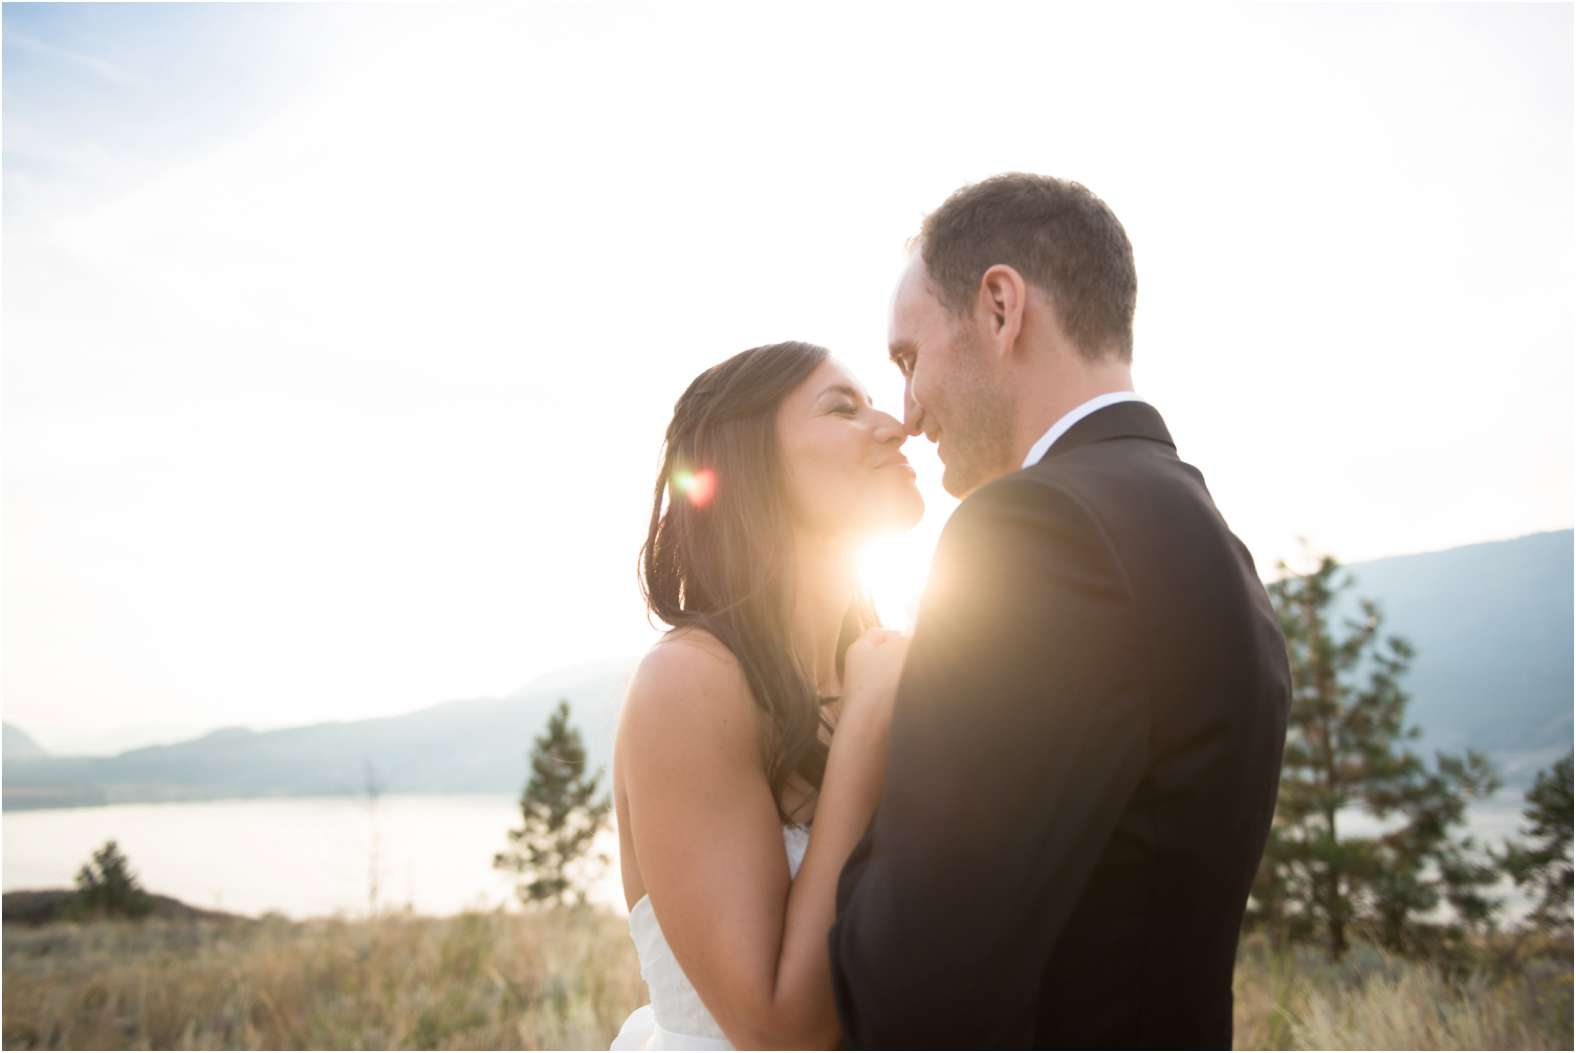 Sunset_bride_groom_mountain.jpg